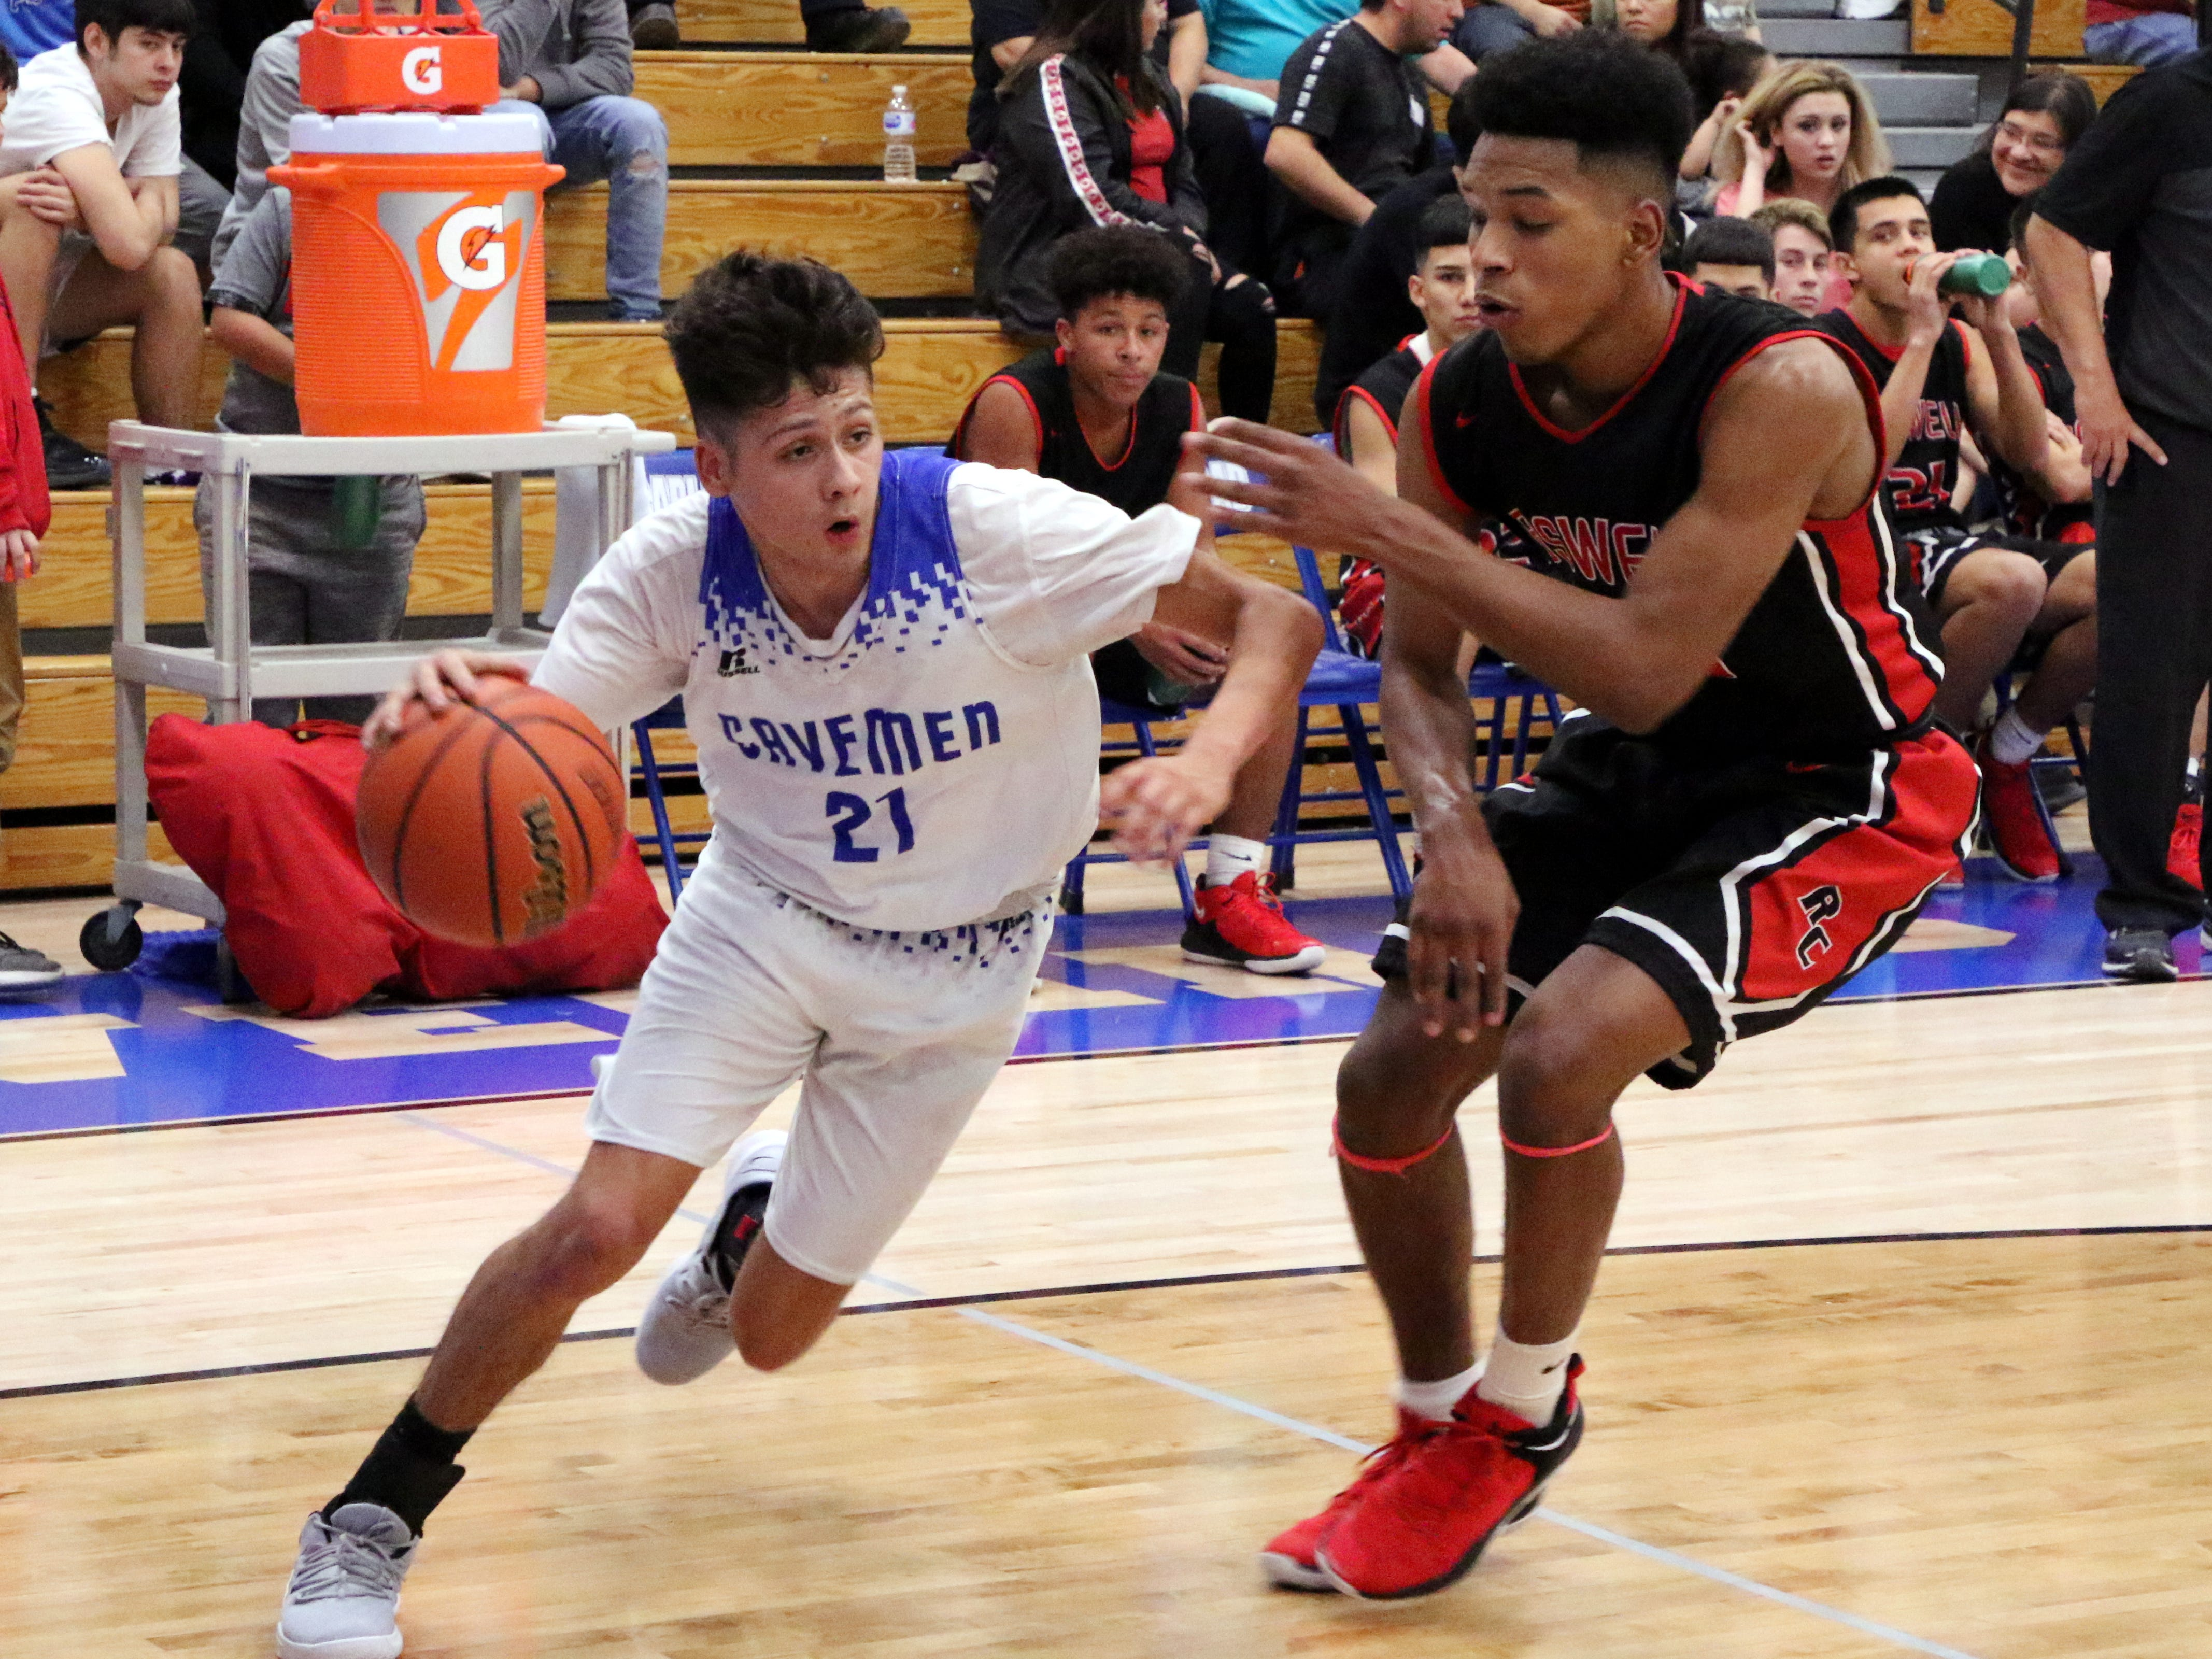 Carlsbad's Pat Espinoza drives the lane in the first half of Friday's game against Roswell. He finished with 14 points.